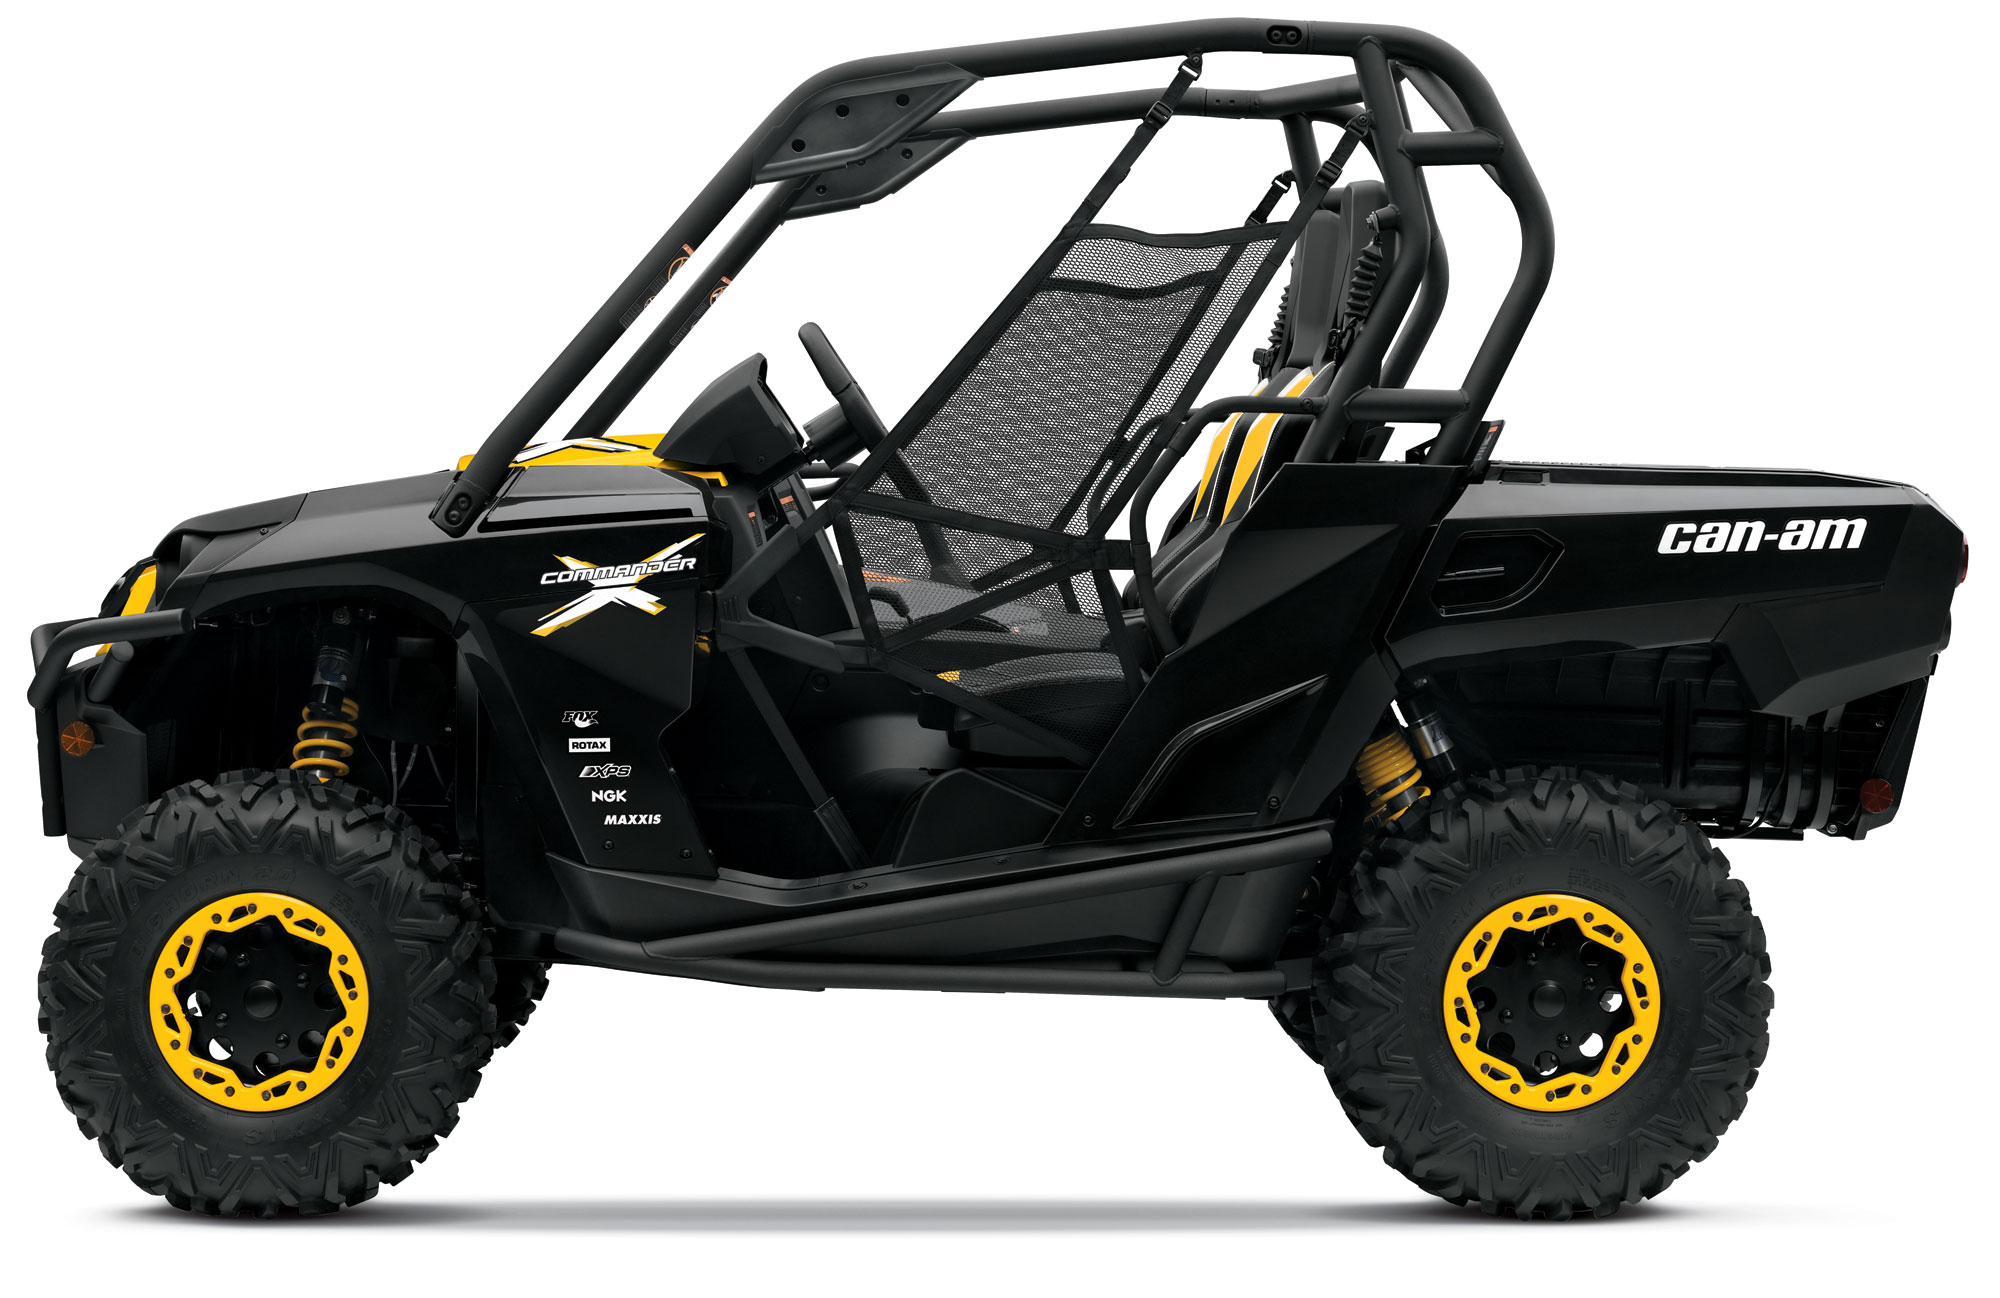 2013 Can Am Commander 1000x Review